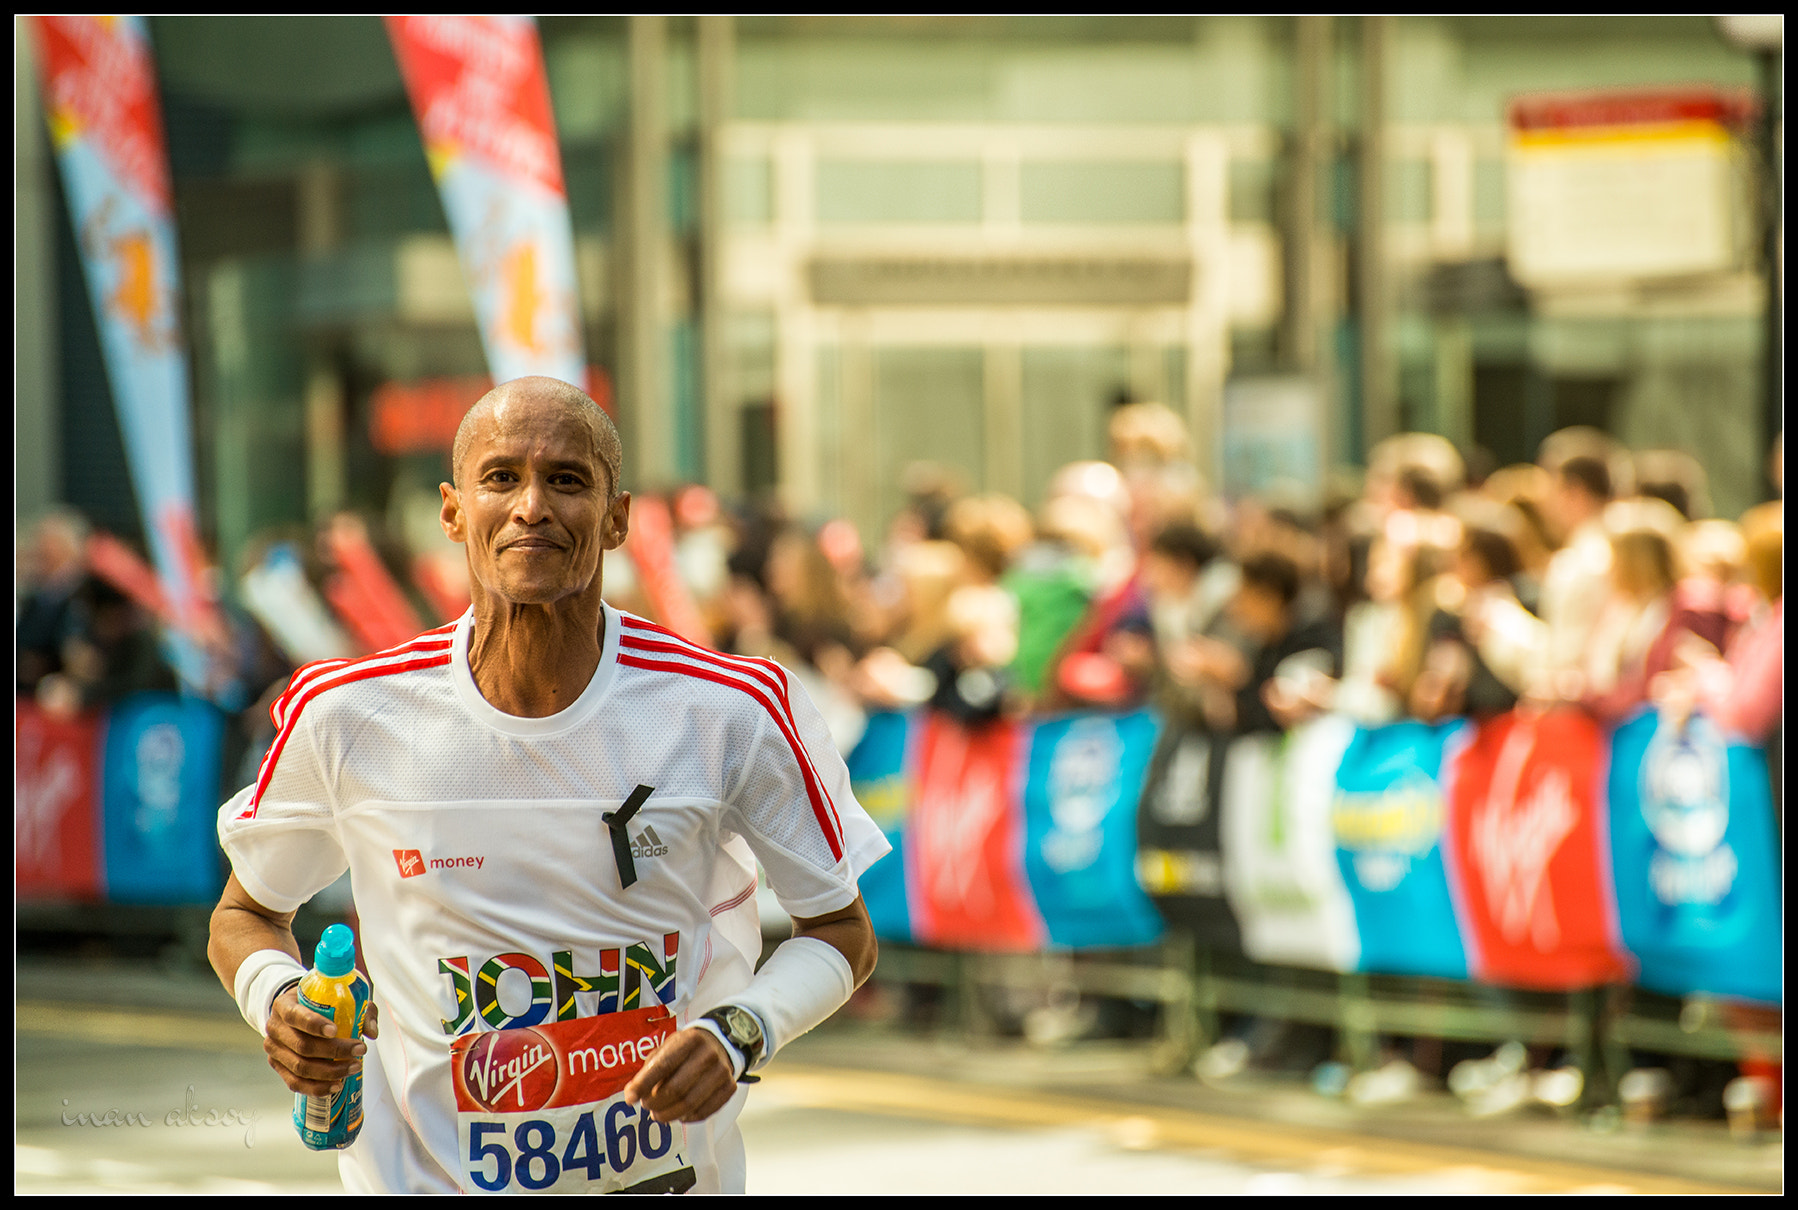 Photograph London Marathon 2013 by Inan Aksoy on 500px